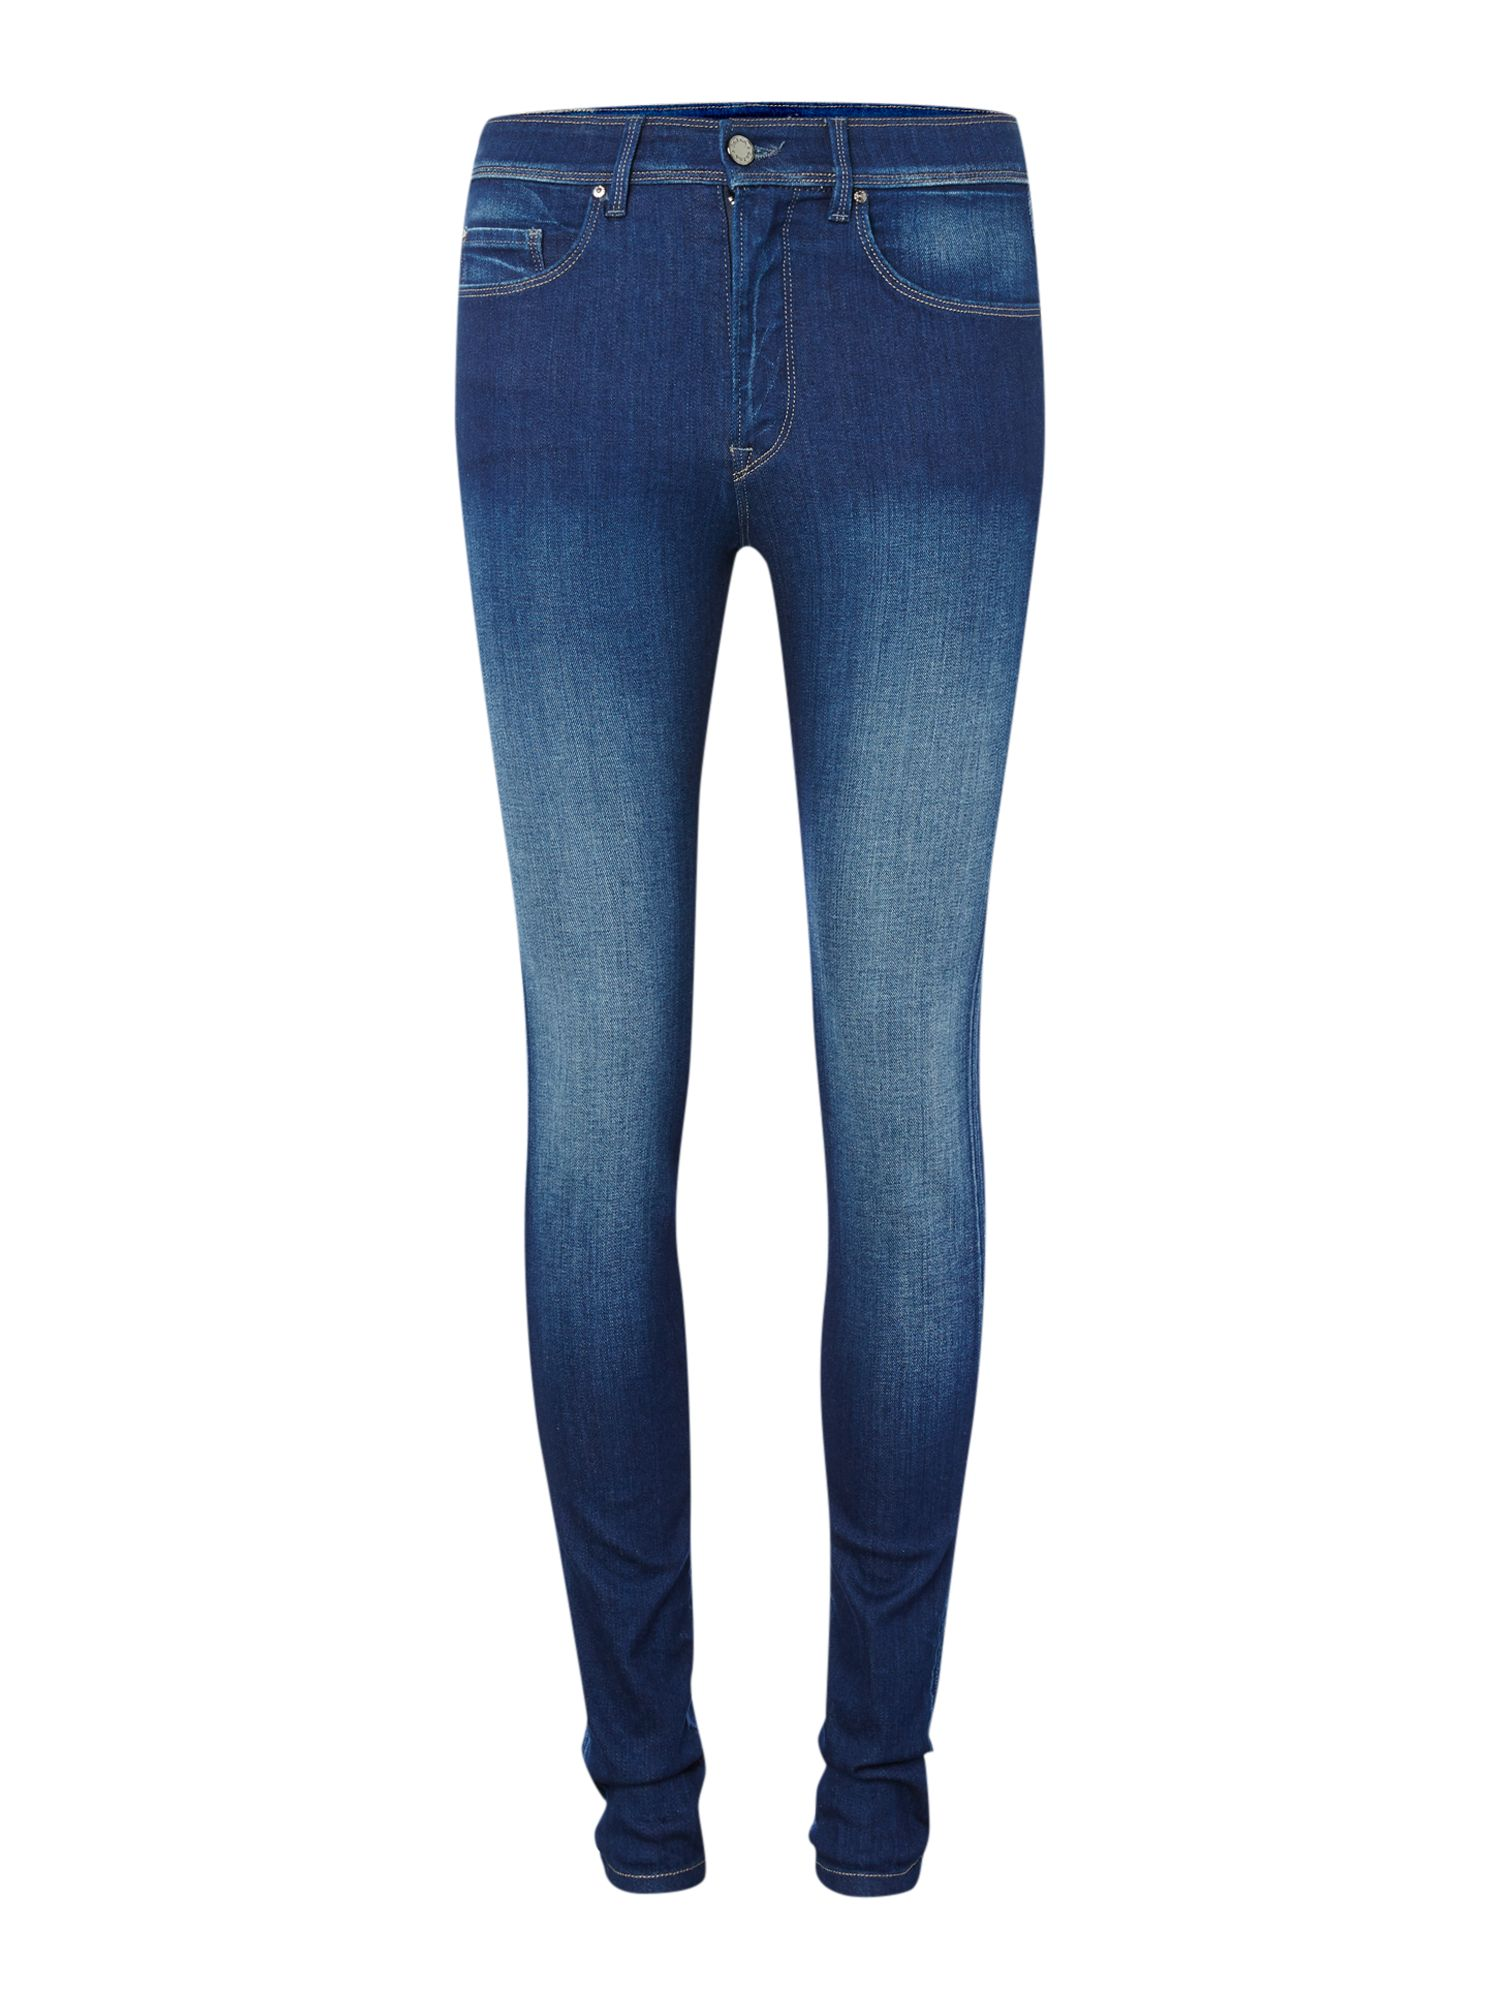 Carrie skinny jeans